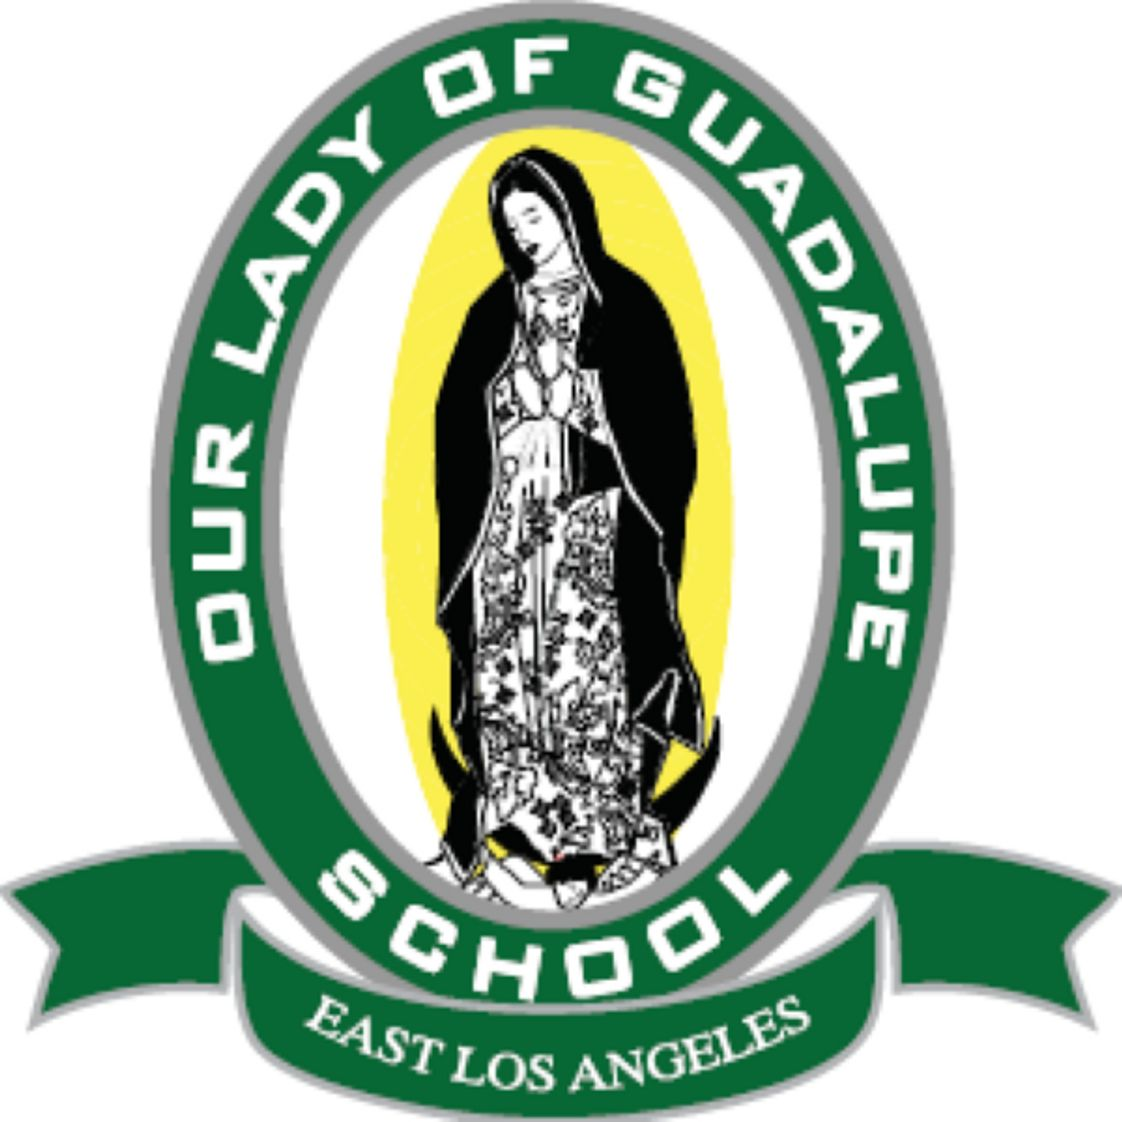 Our Lady of Guadalupe School - Los Angeles Photo #1 - School Logo